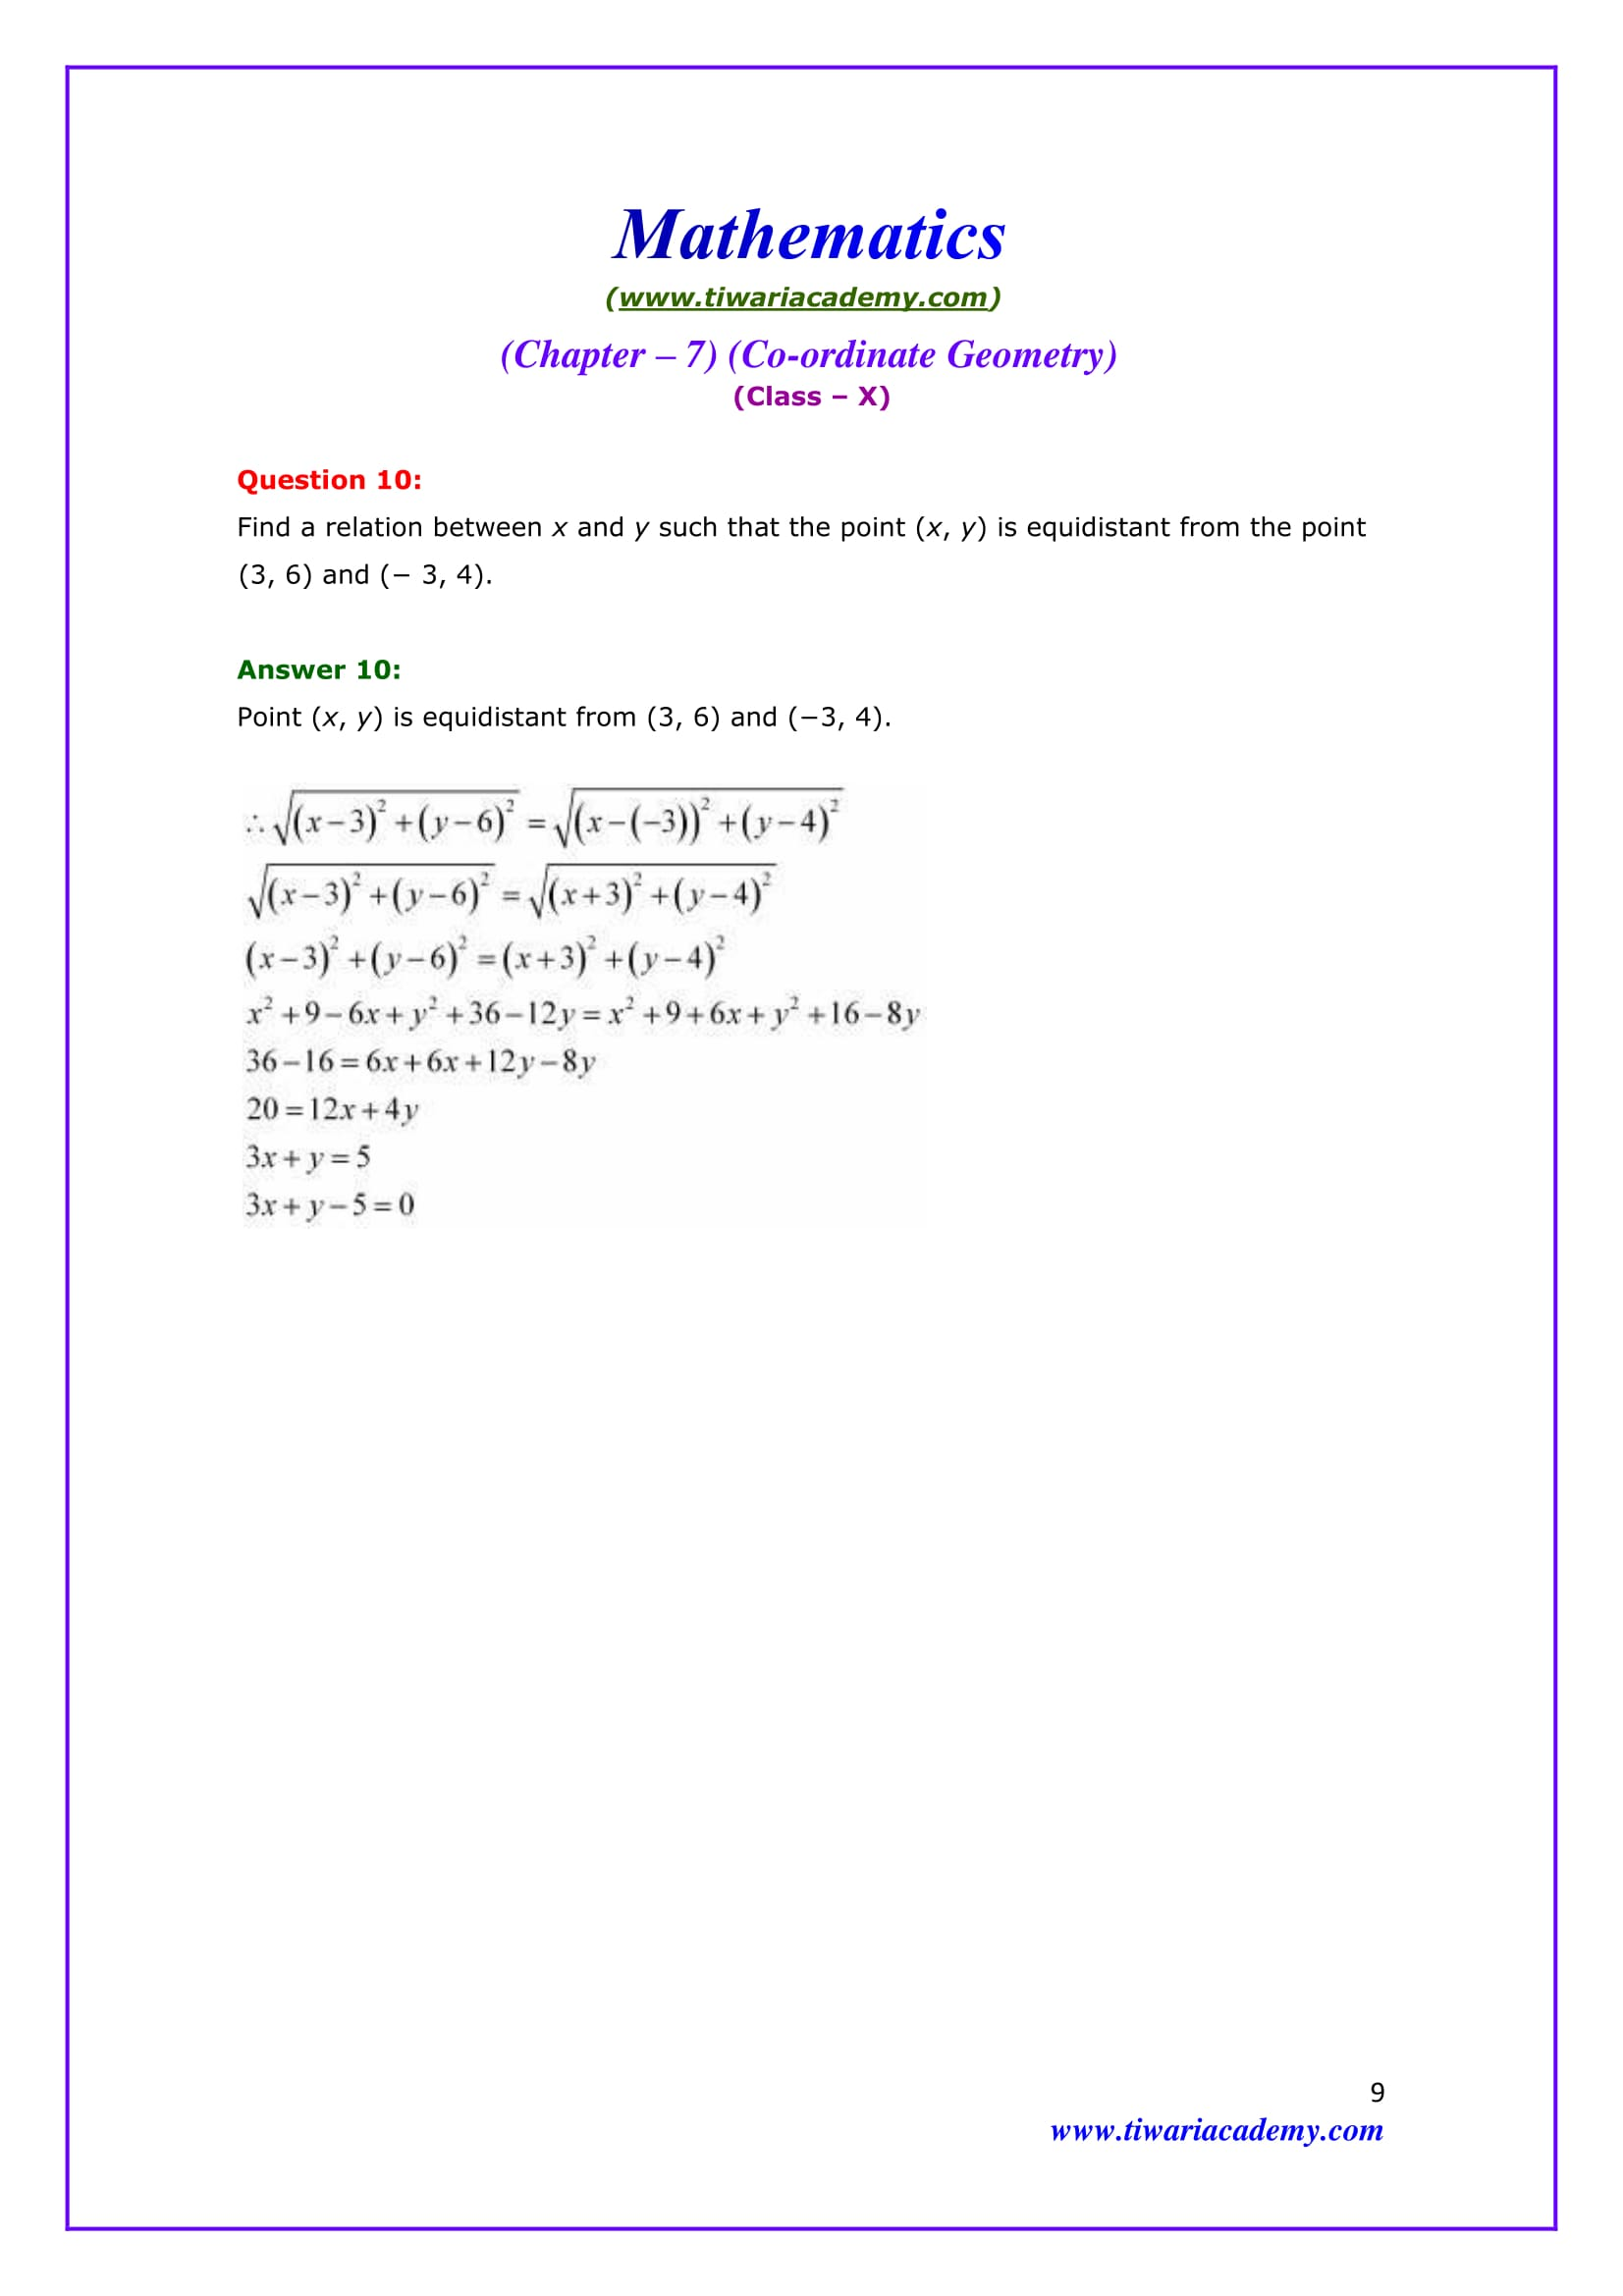 NCERT Solutions for Class 10 Maths Chapter 7 Exercise 7.1 Question 10